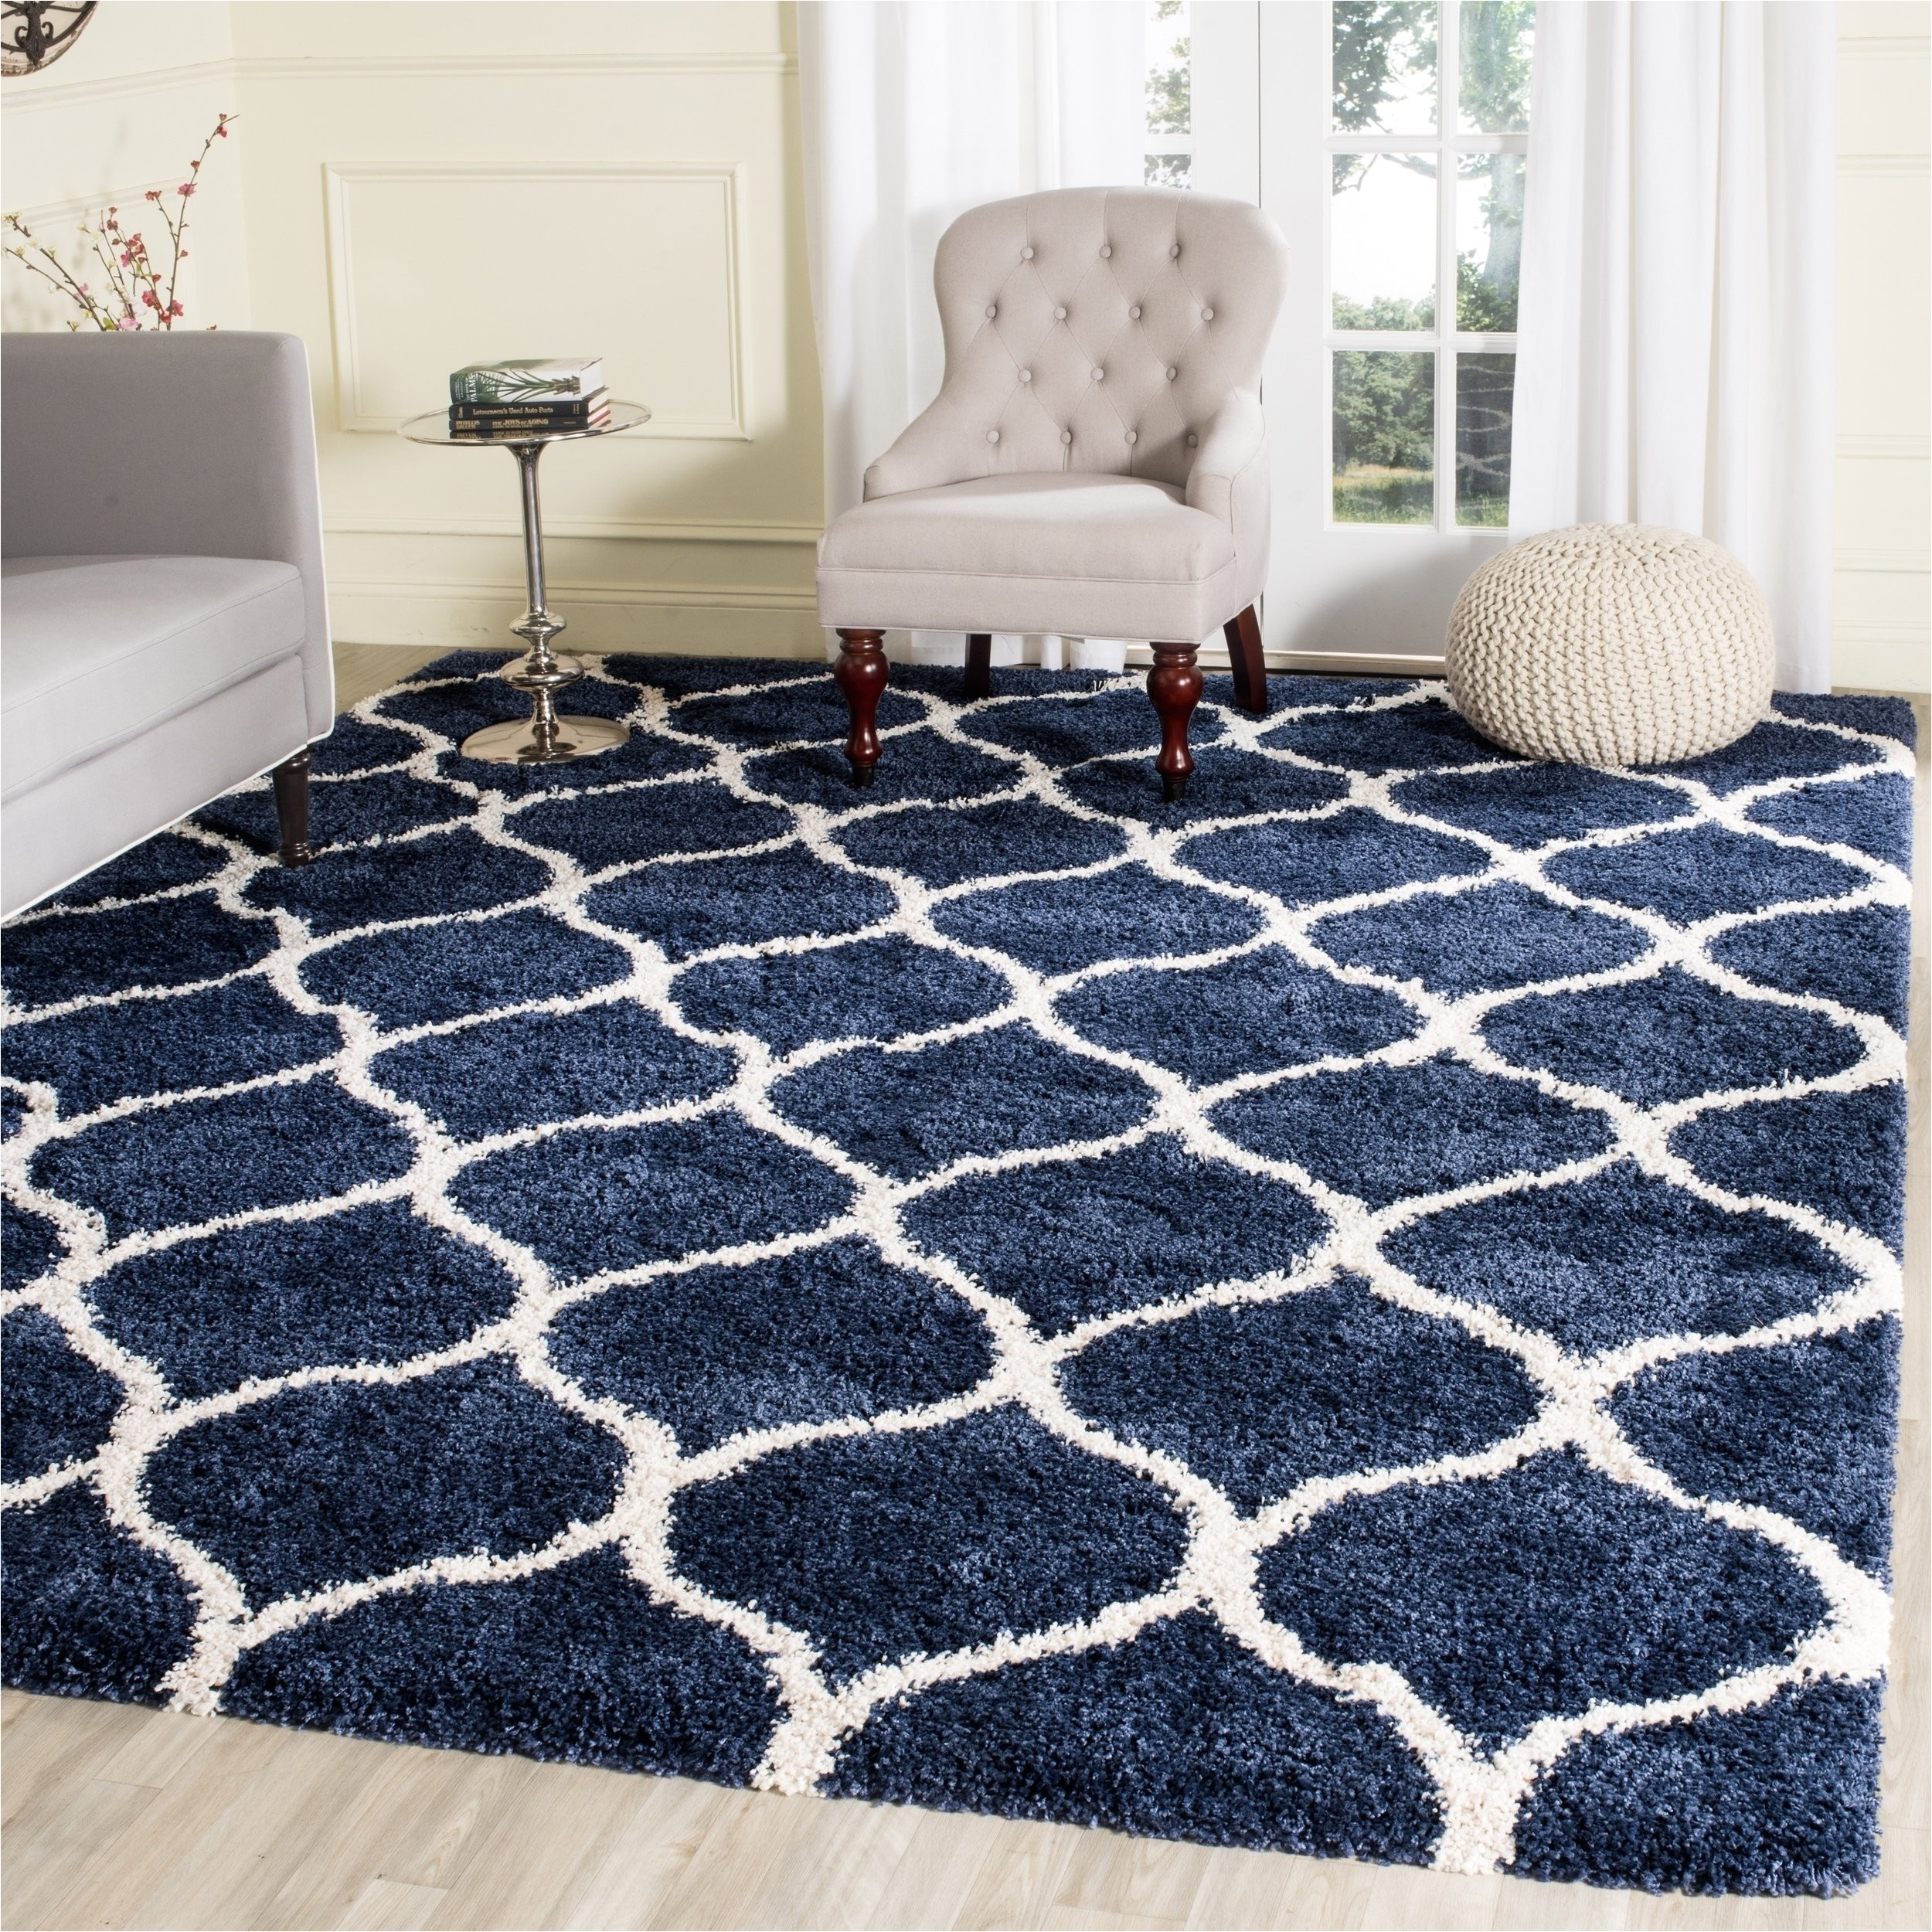 shop safavieh hudson shag modern ogee navy ivory large area rug 10 x 14 on sale free shipping today overstock com 11739332